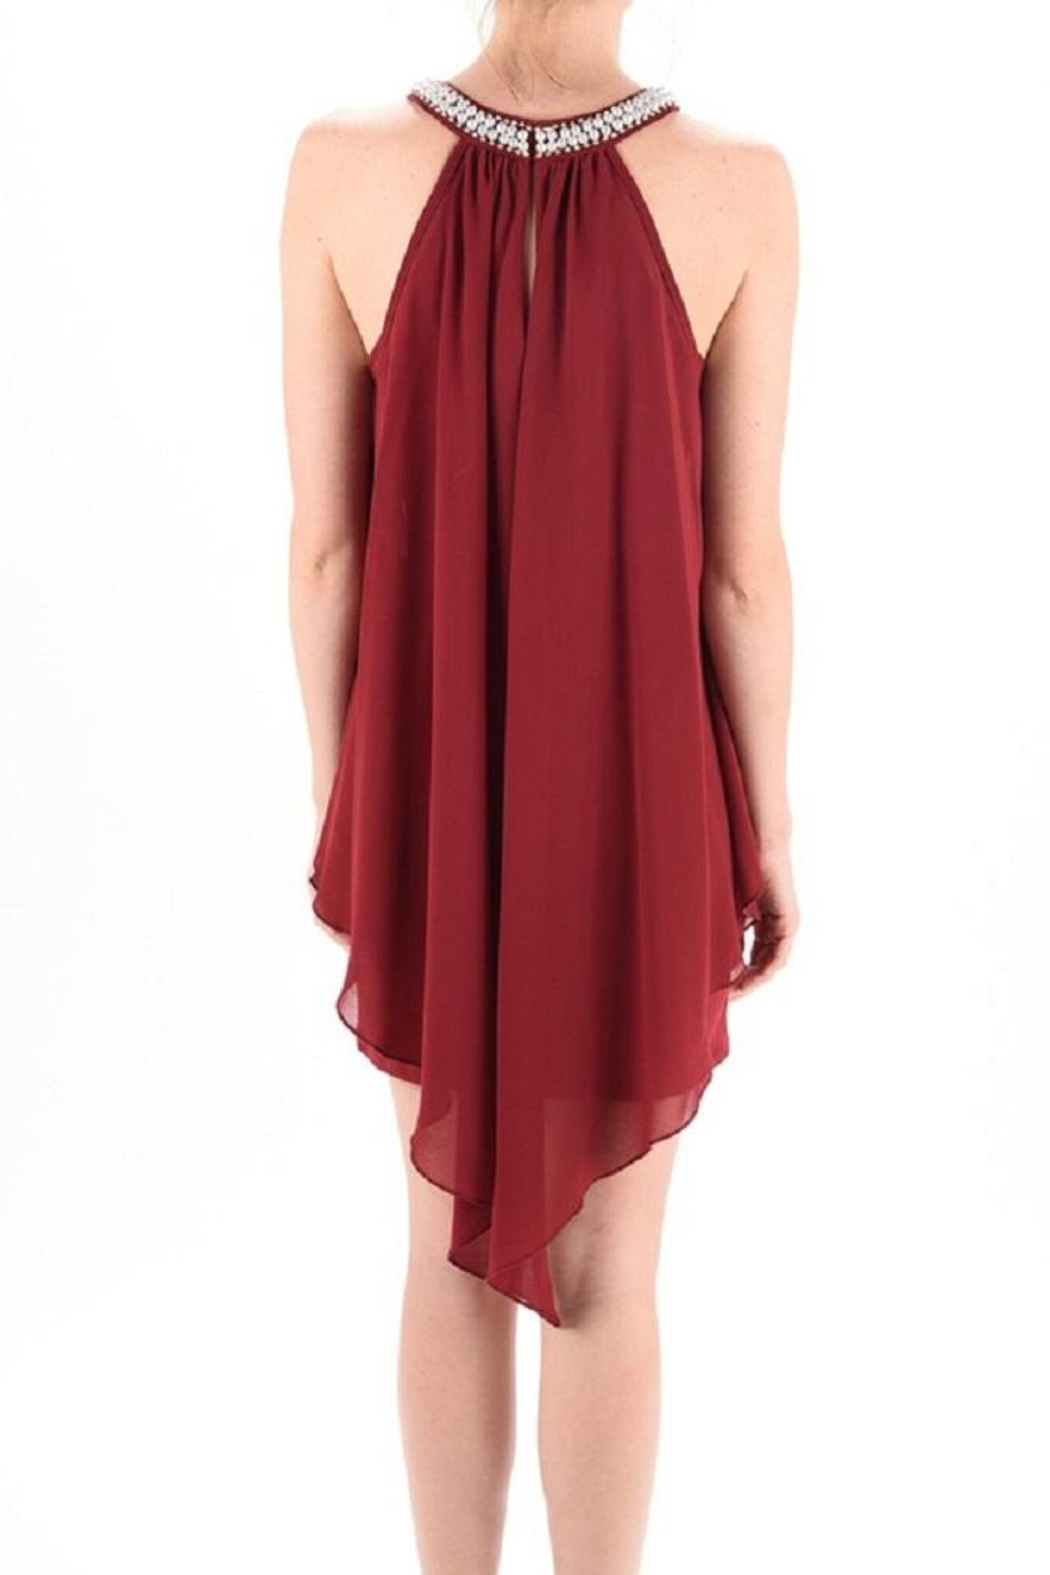 MICHEL Pearl Neck Dress - Front Cropped Image